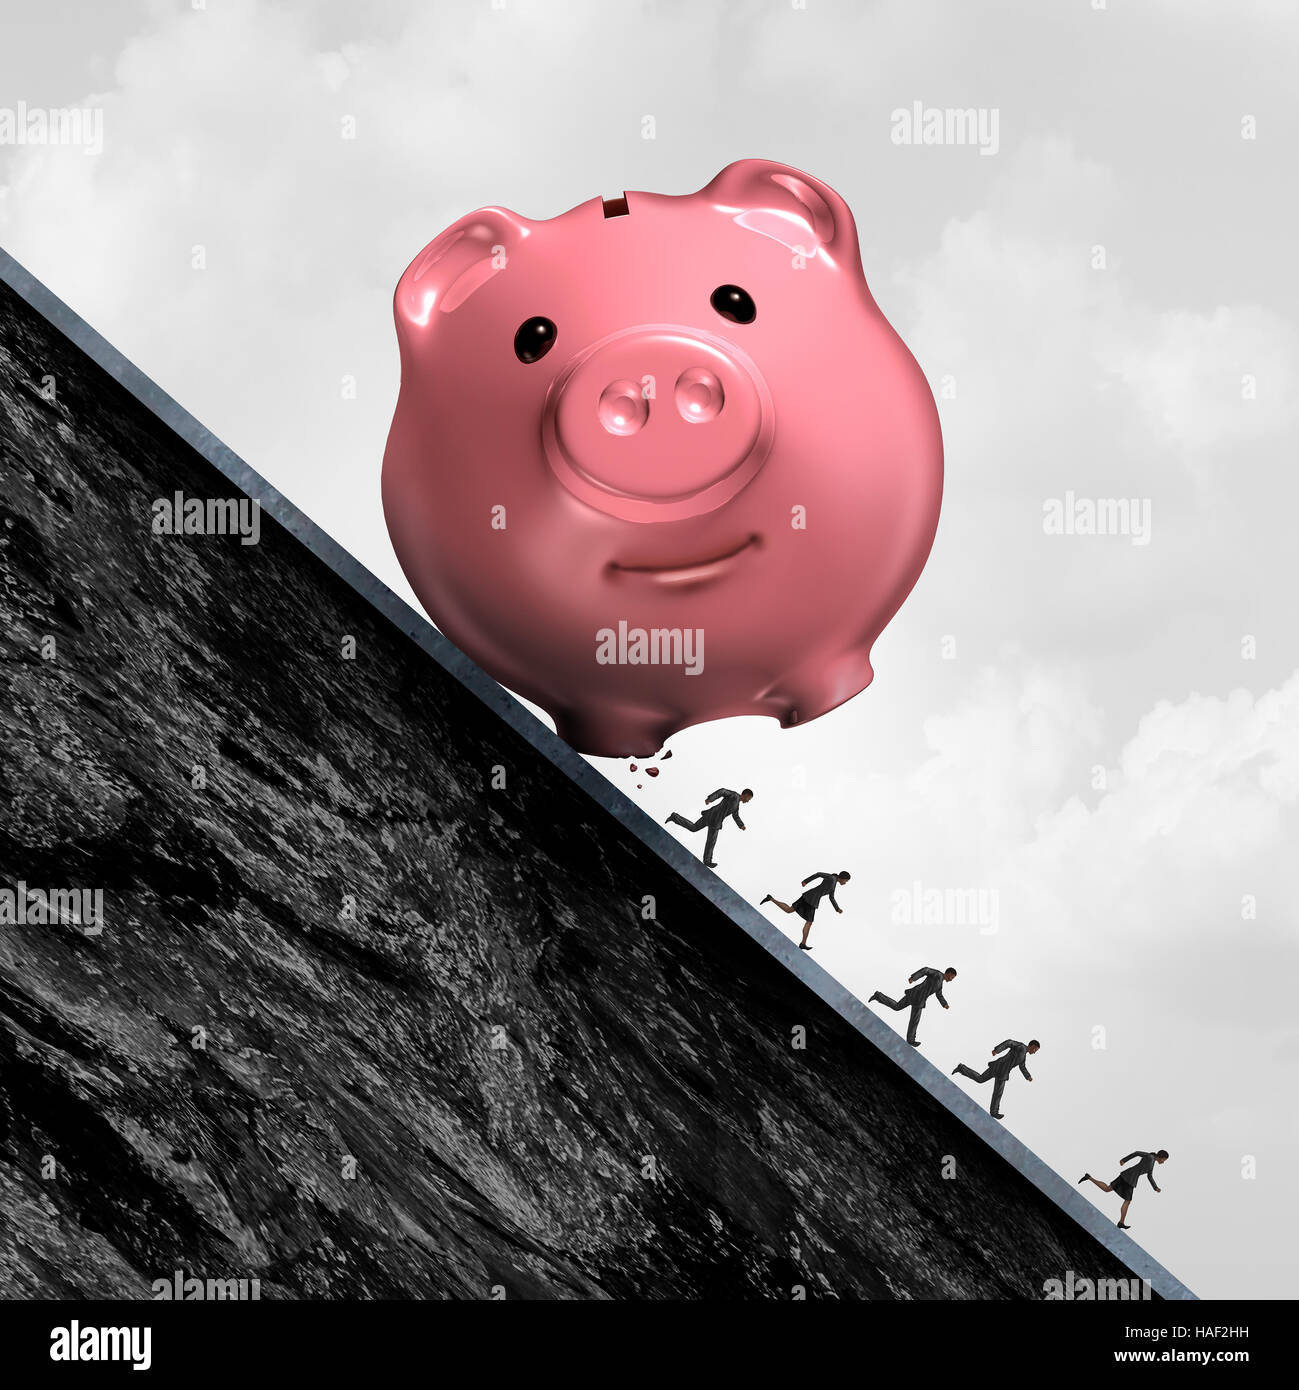 Financial debt pressure and accounting expenses stress as a piggy bank rolling down a hill with people running away - Stock Image